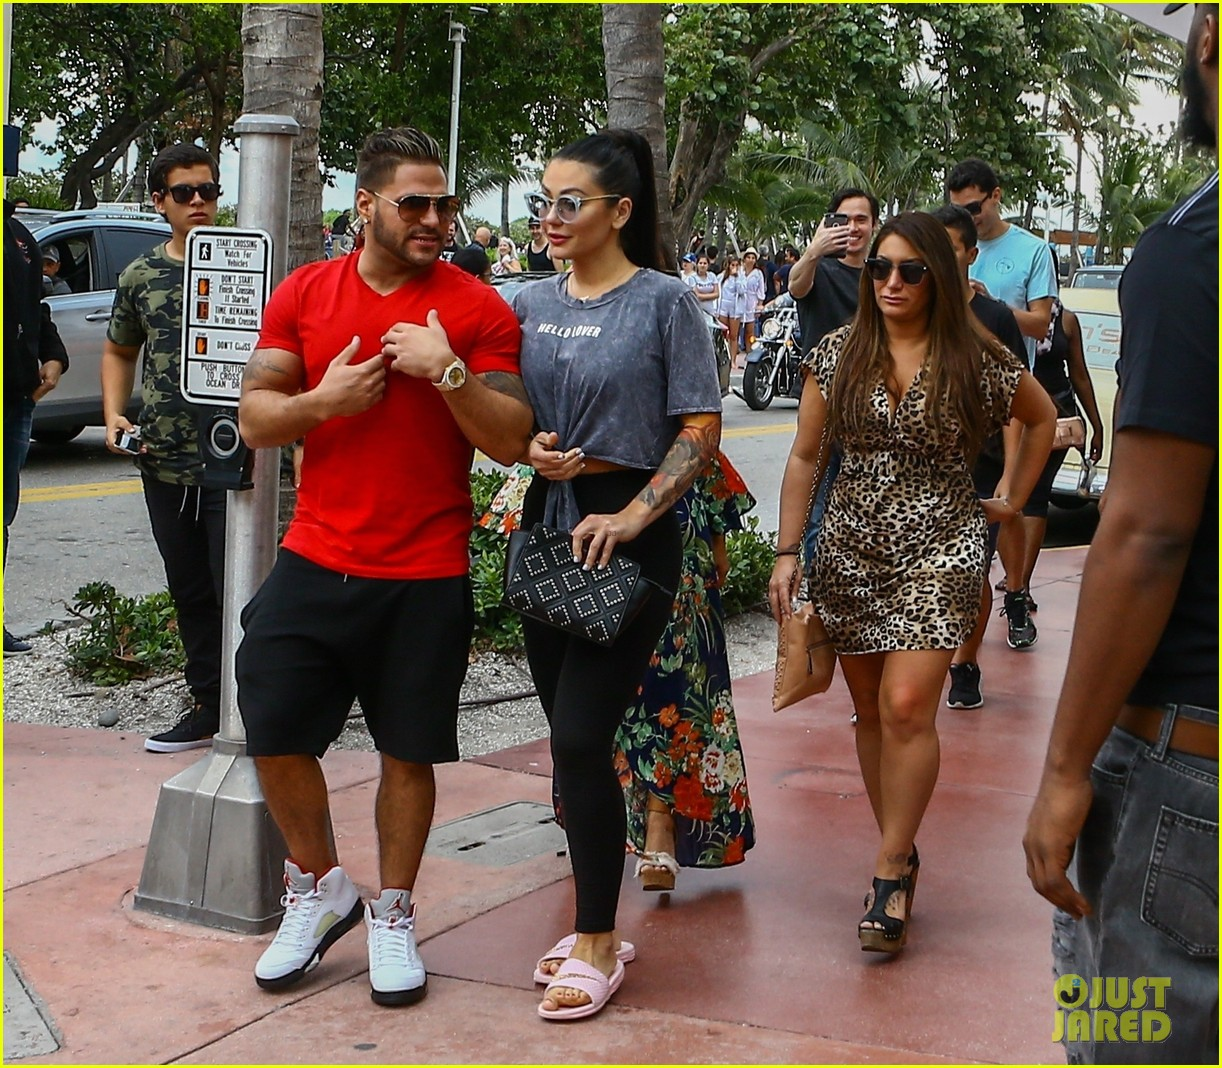 'Jersey Shore' Cast Begins Filming Reunion Show In Miami